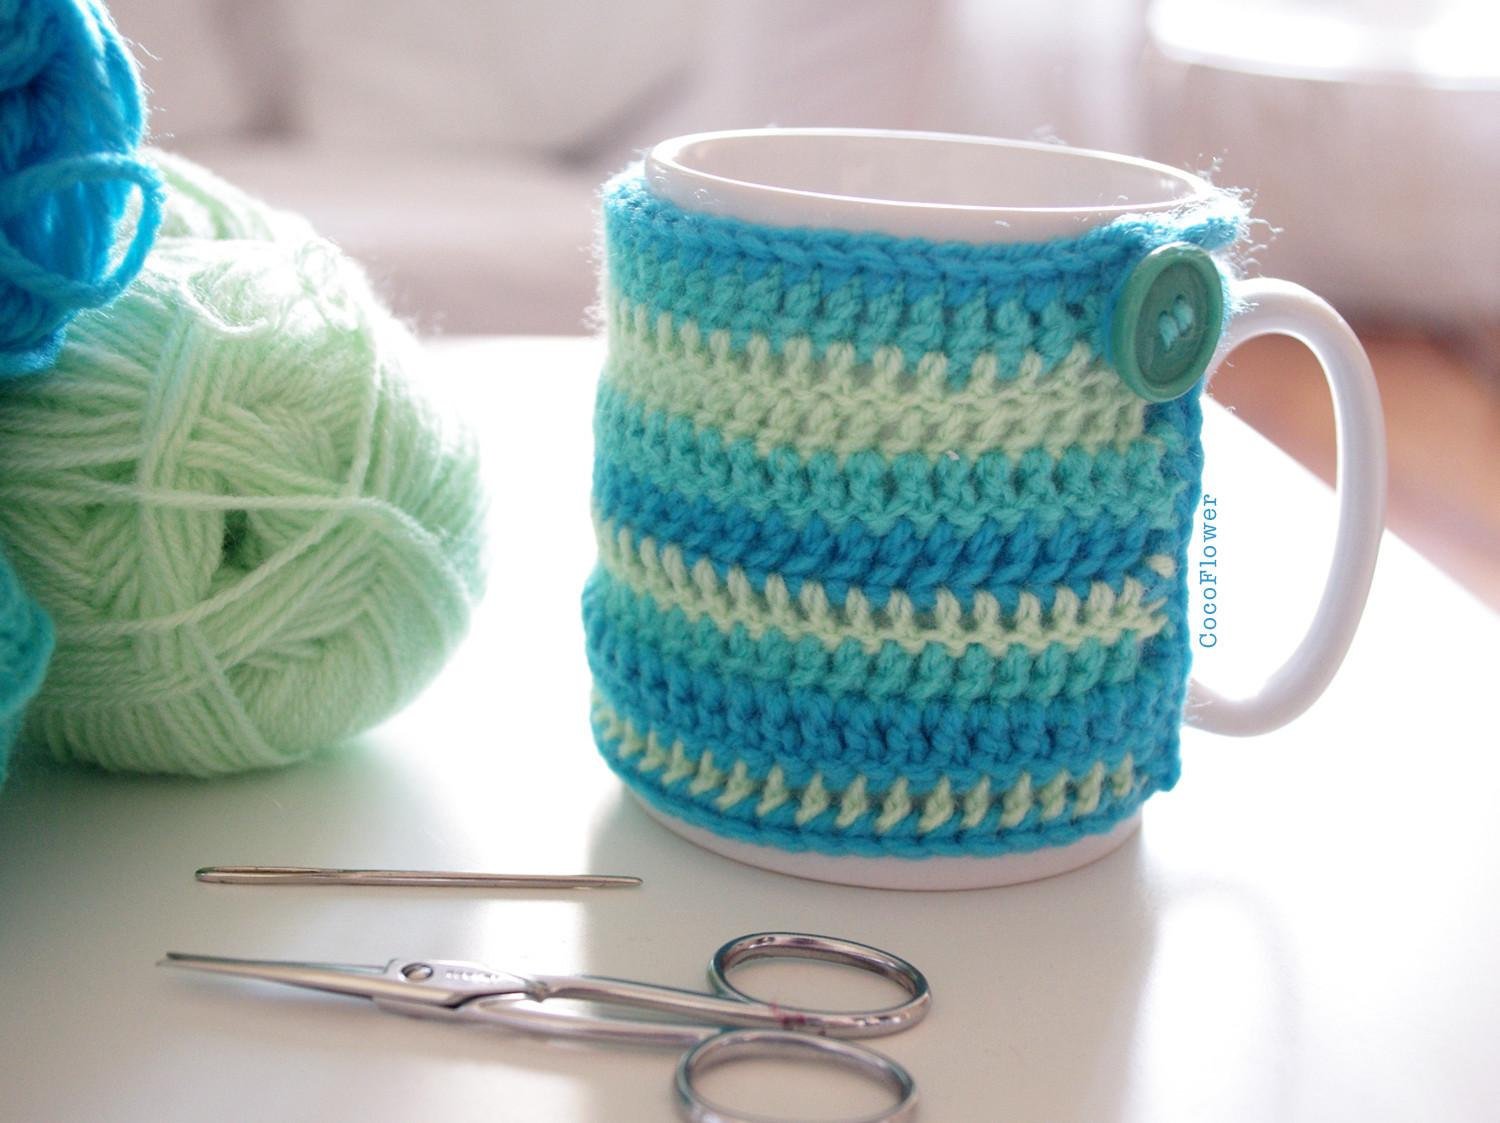 Cocoflower Diy Crafts Crochet Handmade Cozy Mug